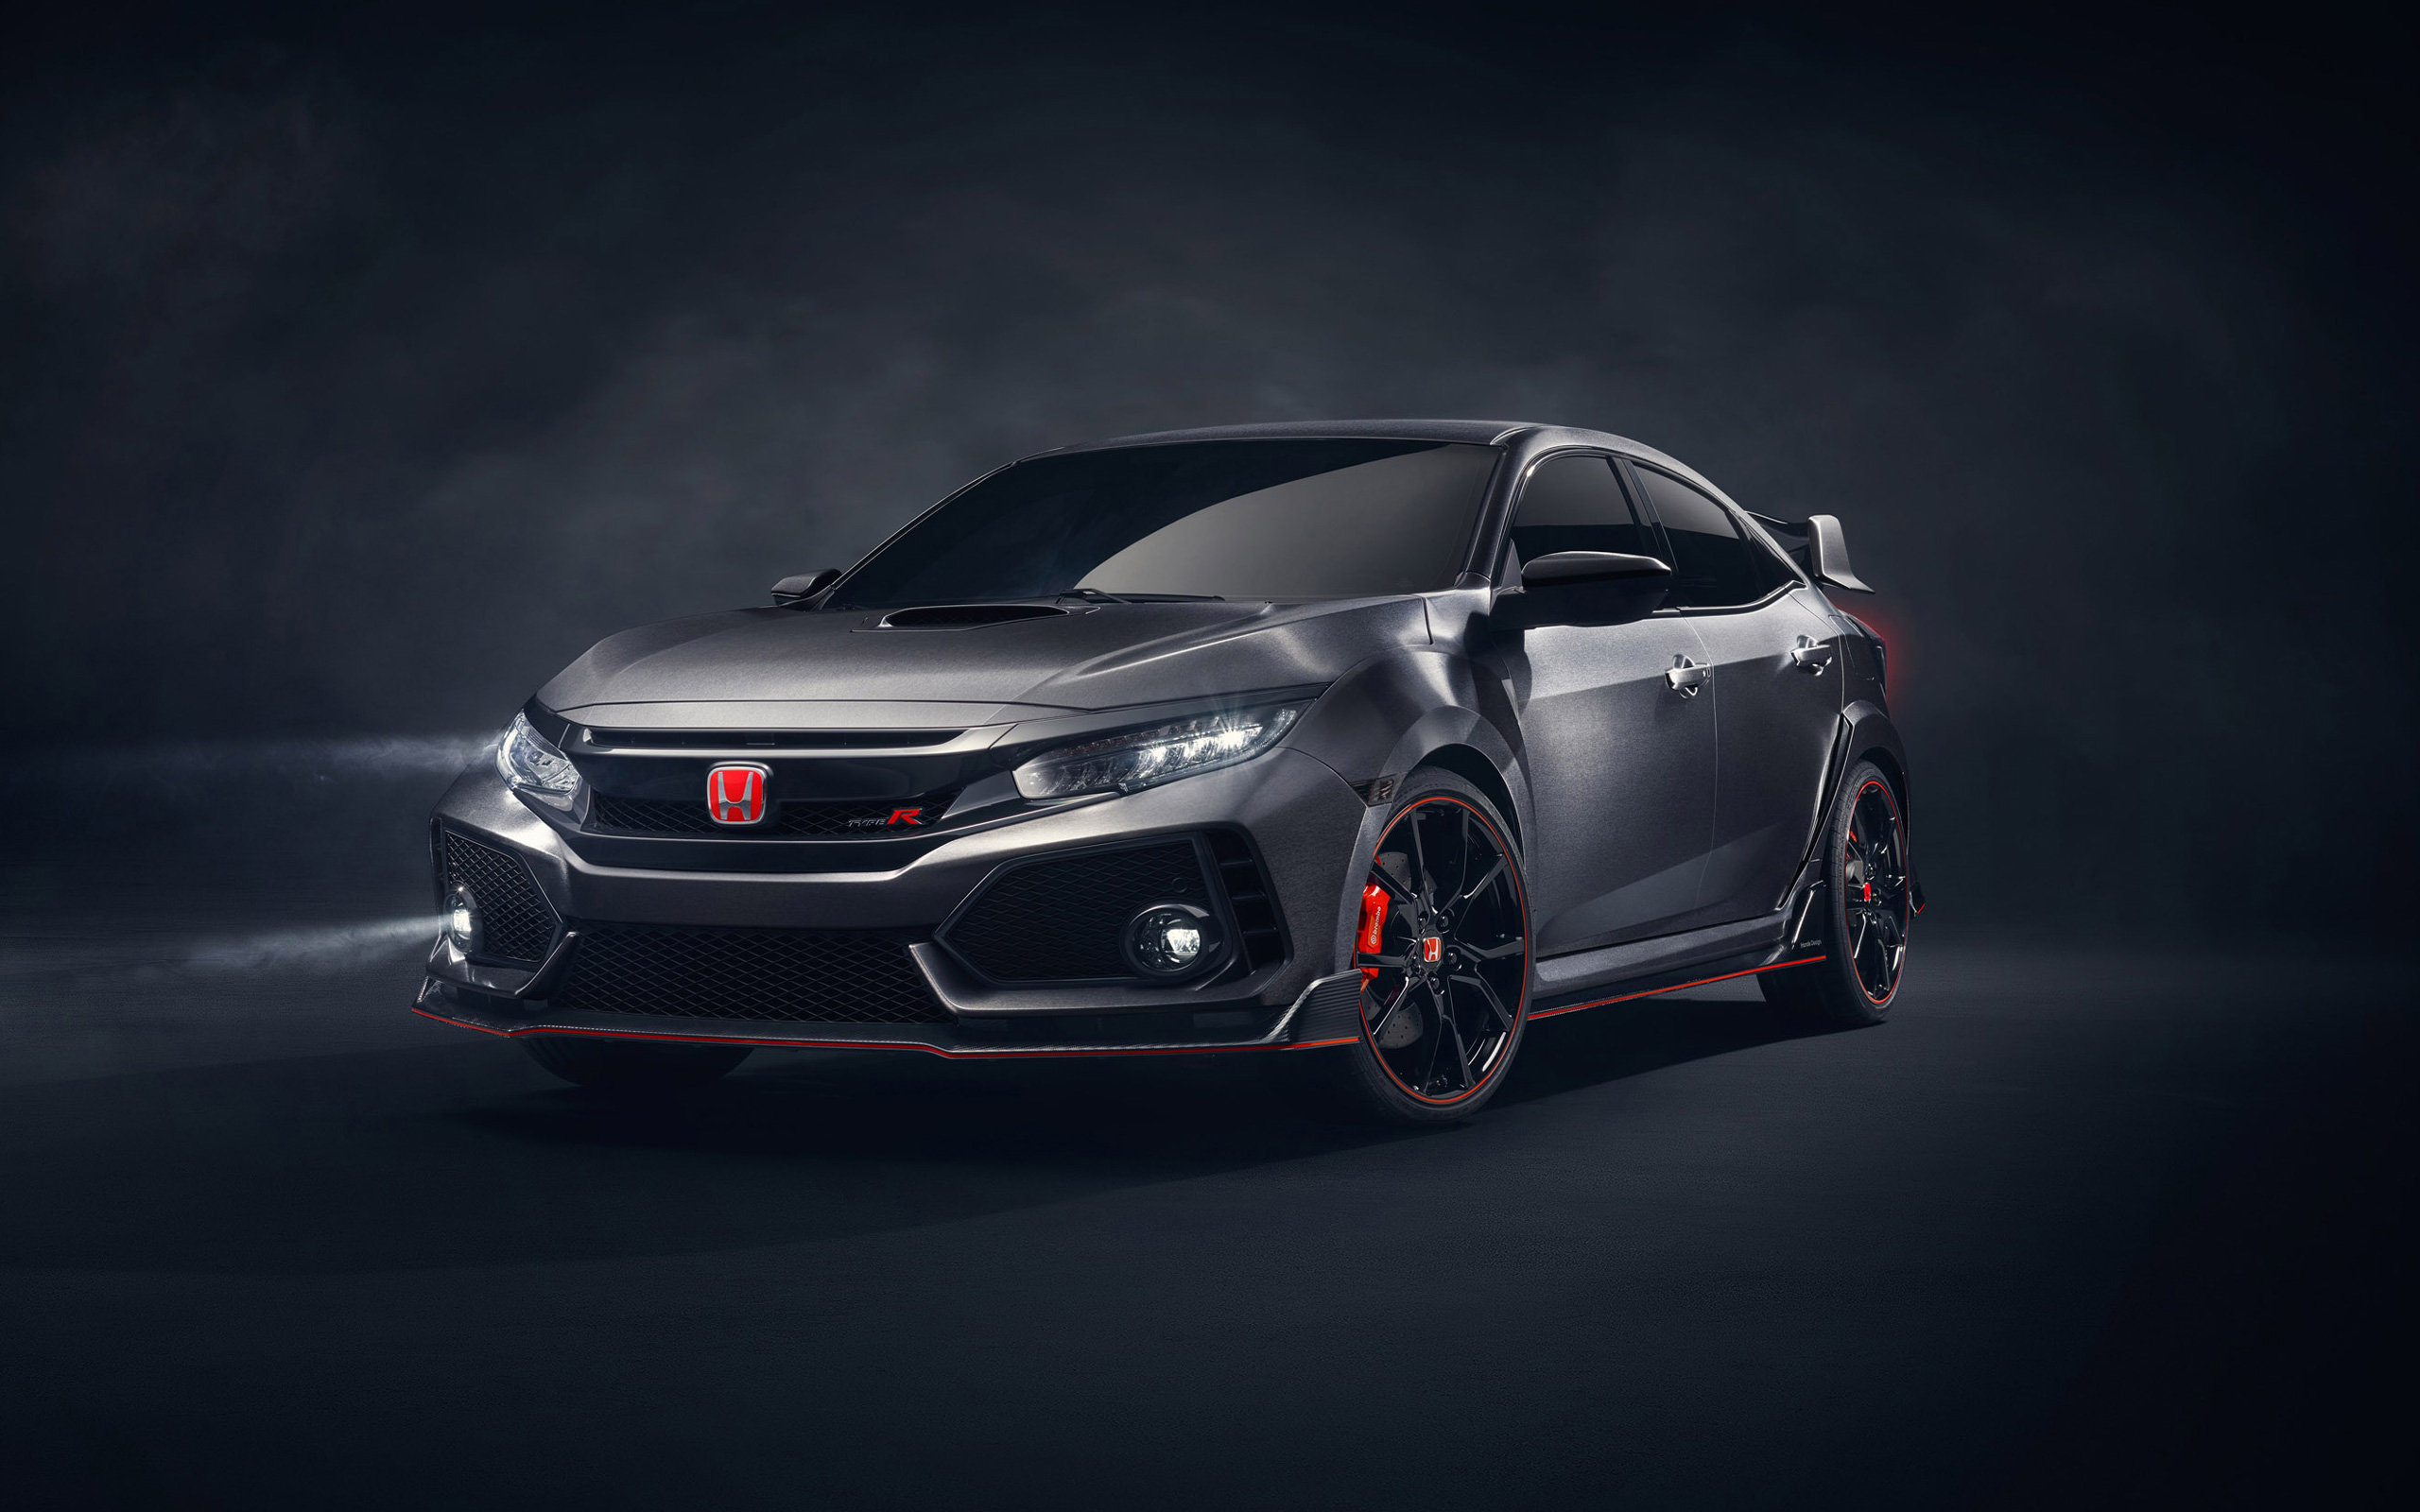 Honda Phone Wallpapers Honda Wallpapers 4k For Your Phone And Desktop Screen